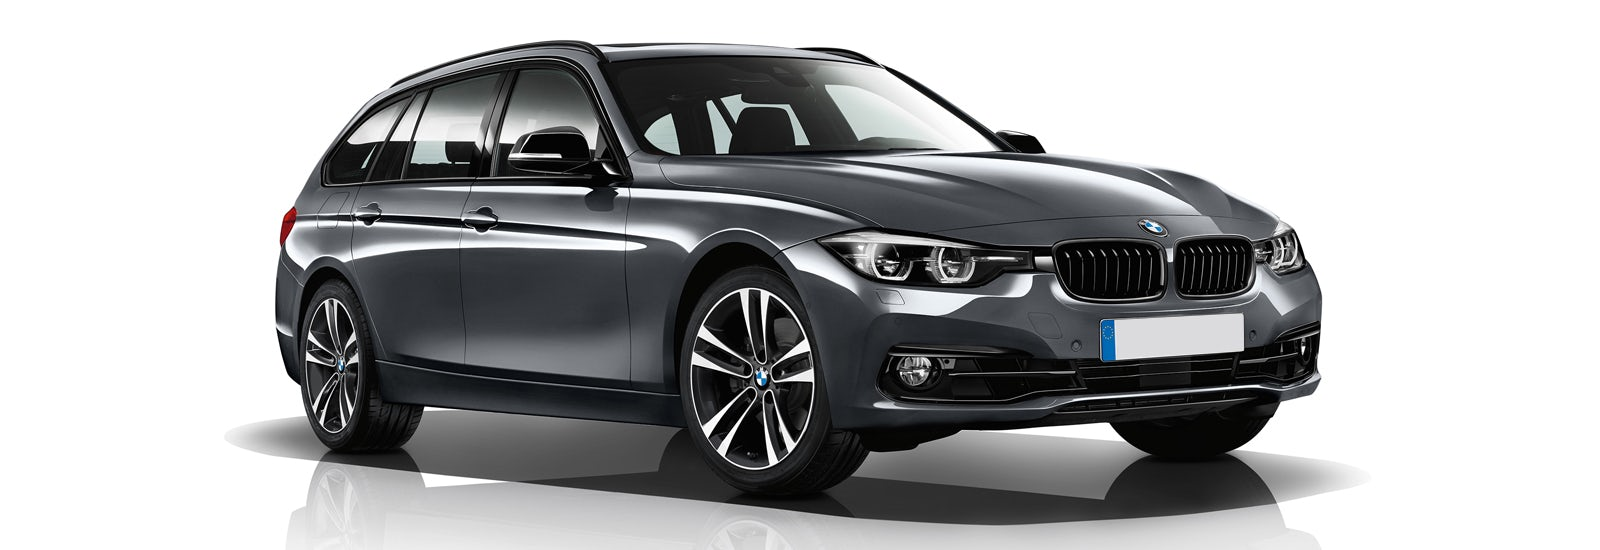 BMW Series Editions Complete Guide Carwow - Bmw 3 wheel car